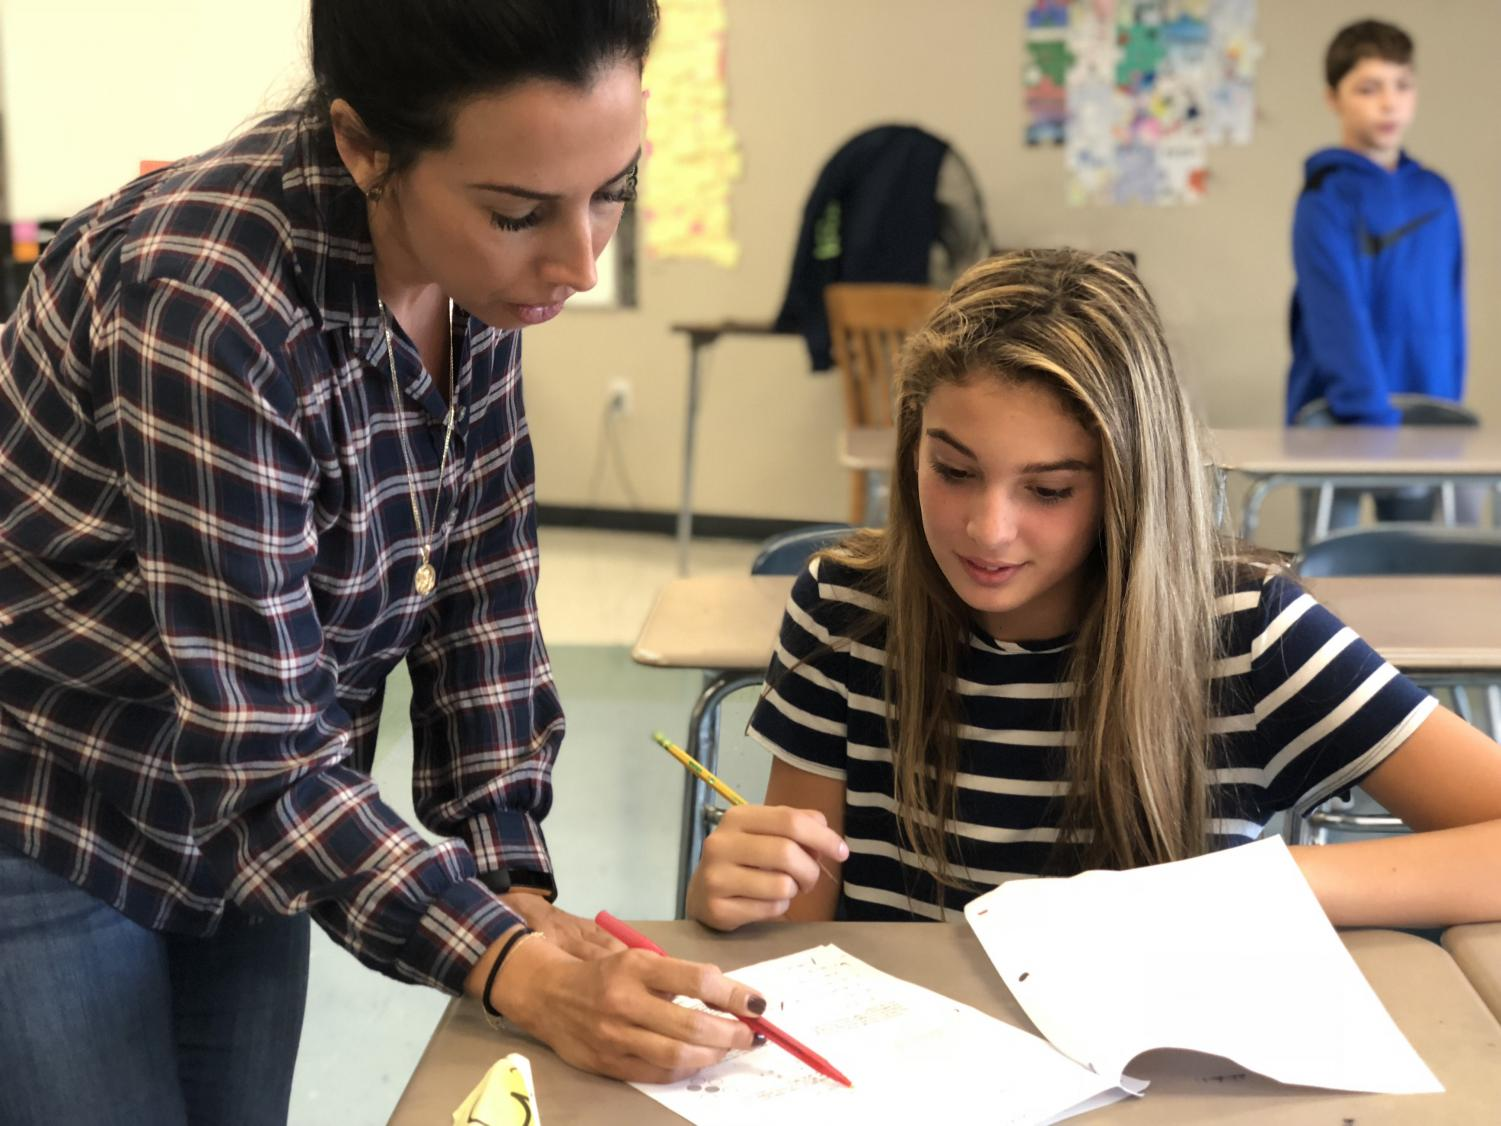 Seventh grade teacher Ms. Christina Thomas looks over a test with a student.